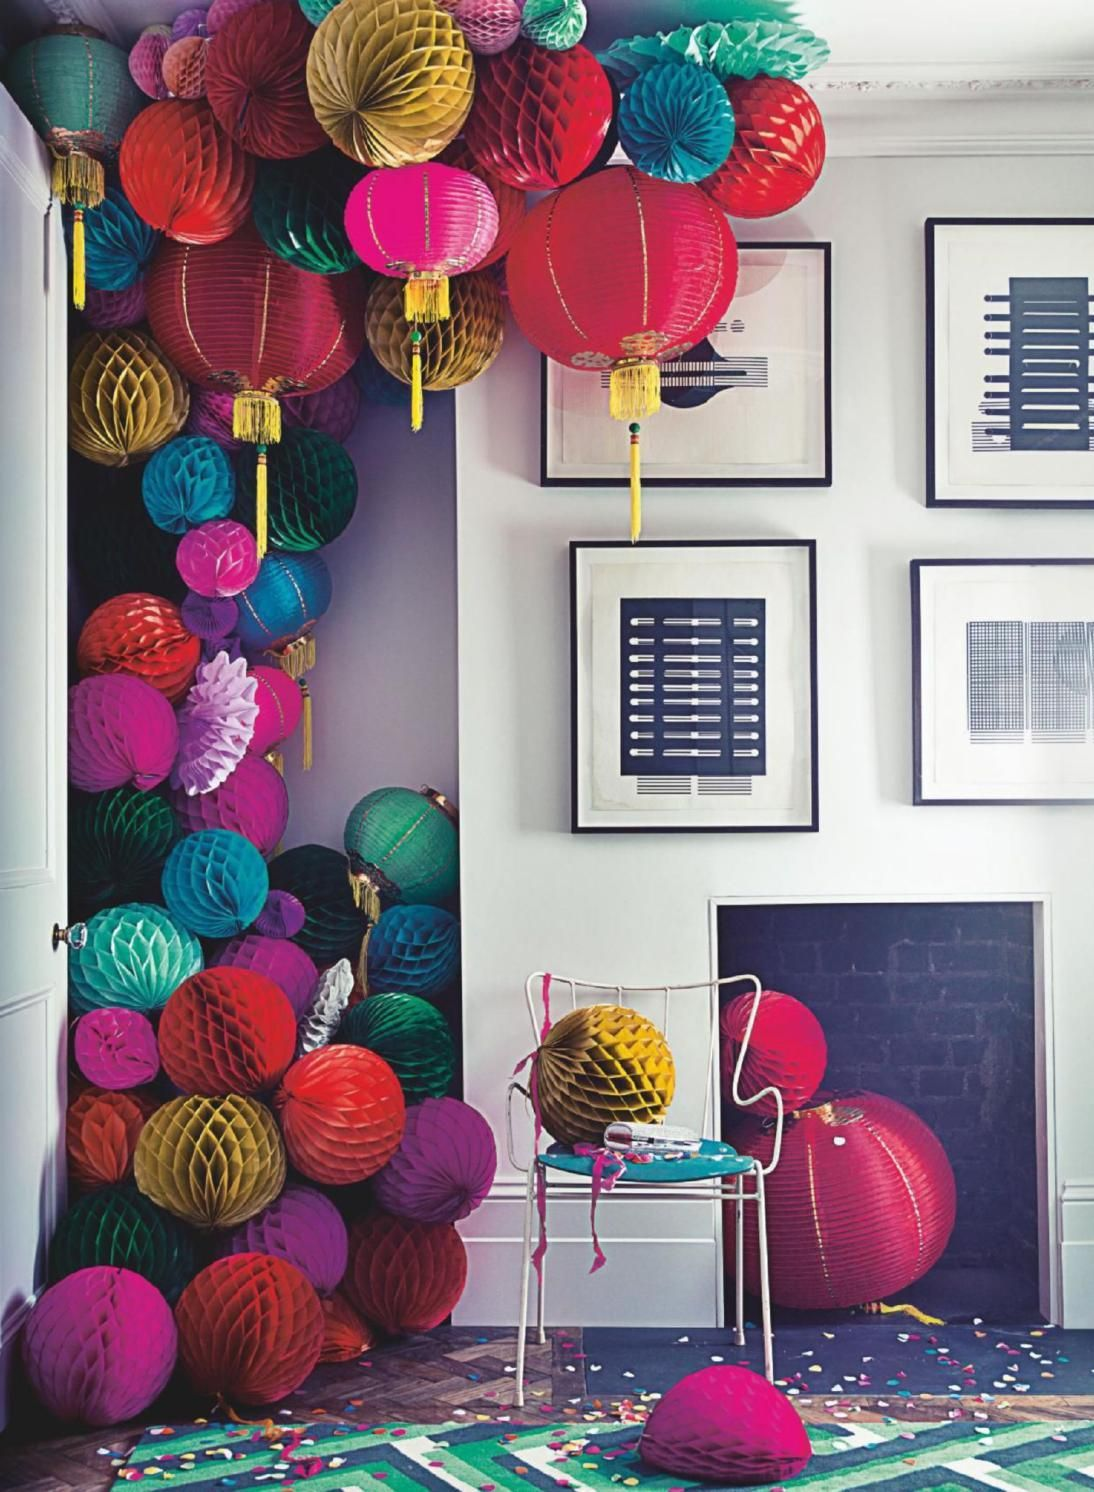 diy shell earrings paper lanterns lantern decorations and chinese new year decorations. Black Bedroom Furniture Sets. Home Design Ideas